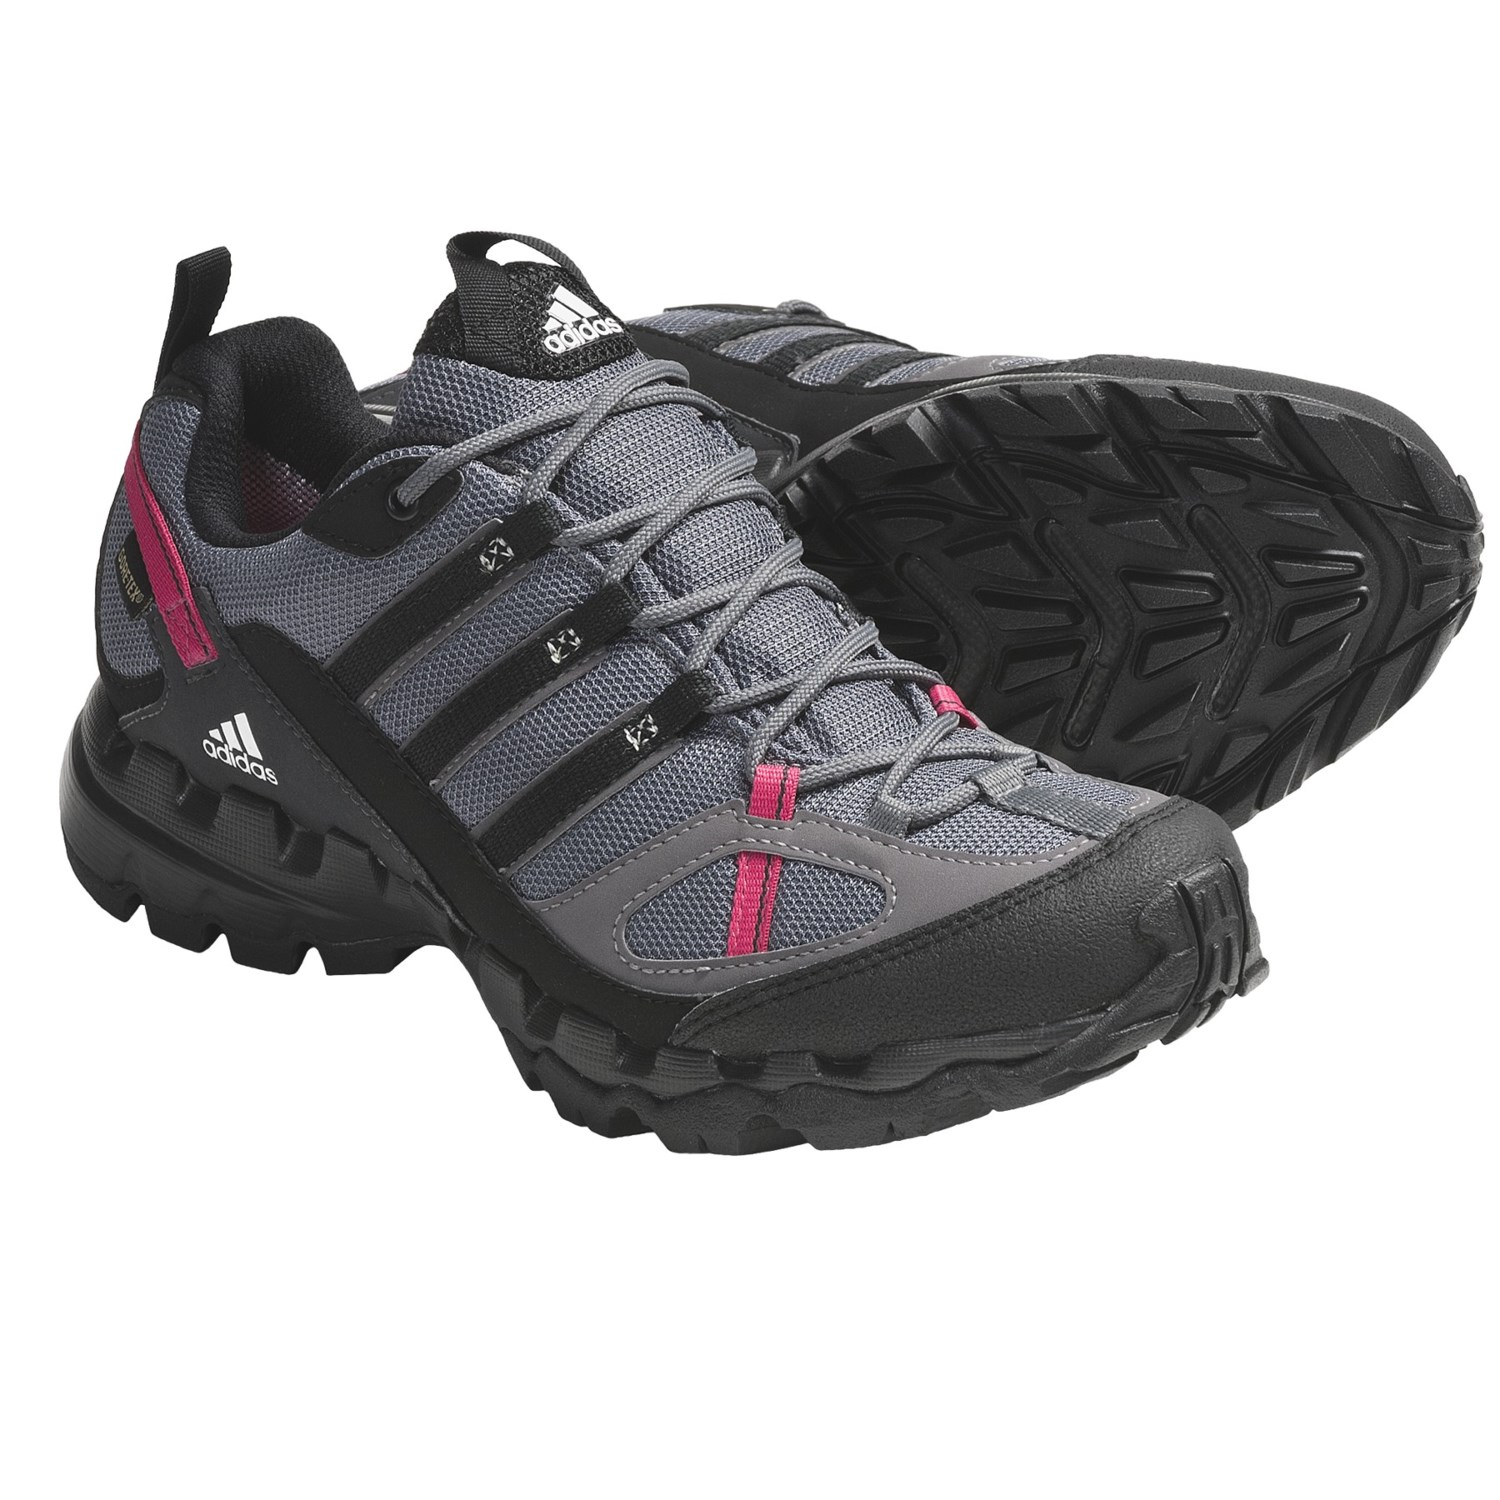 Outdoor AX 1 Gore-Tex^ Trail Running Shoes - Waterproof (For Women